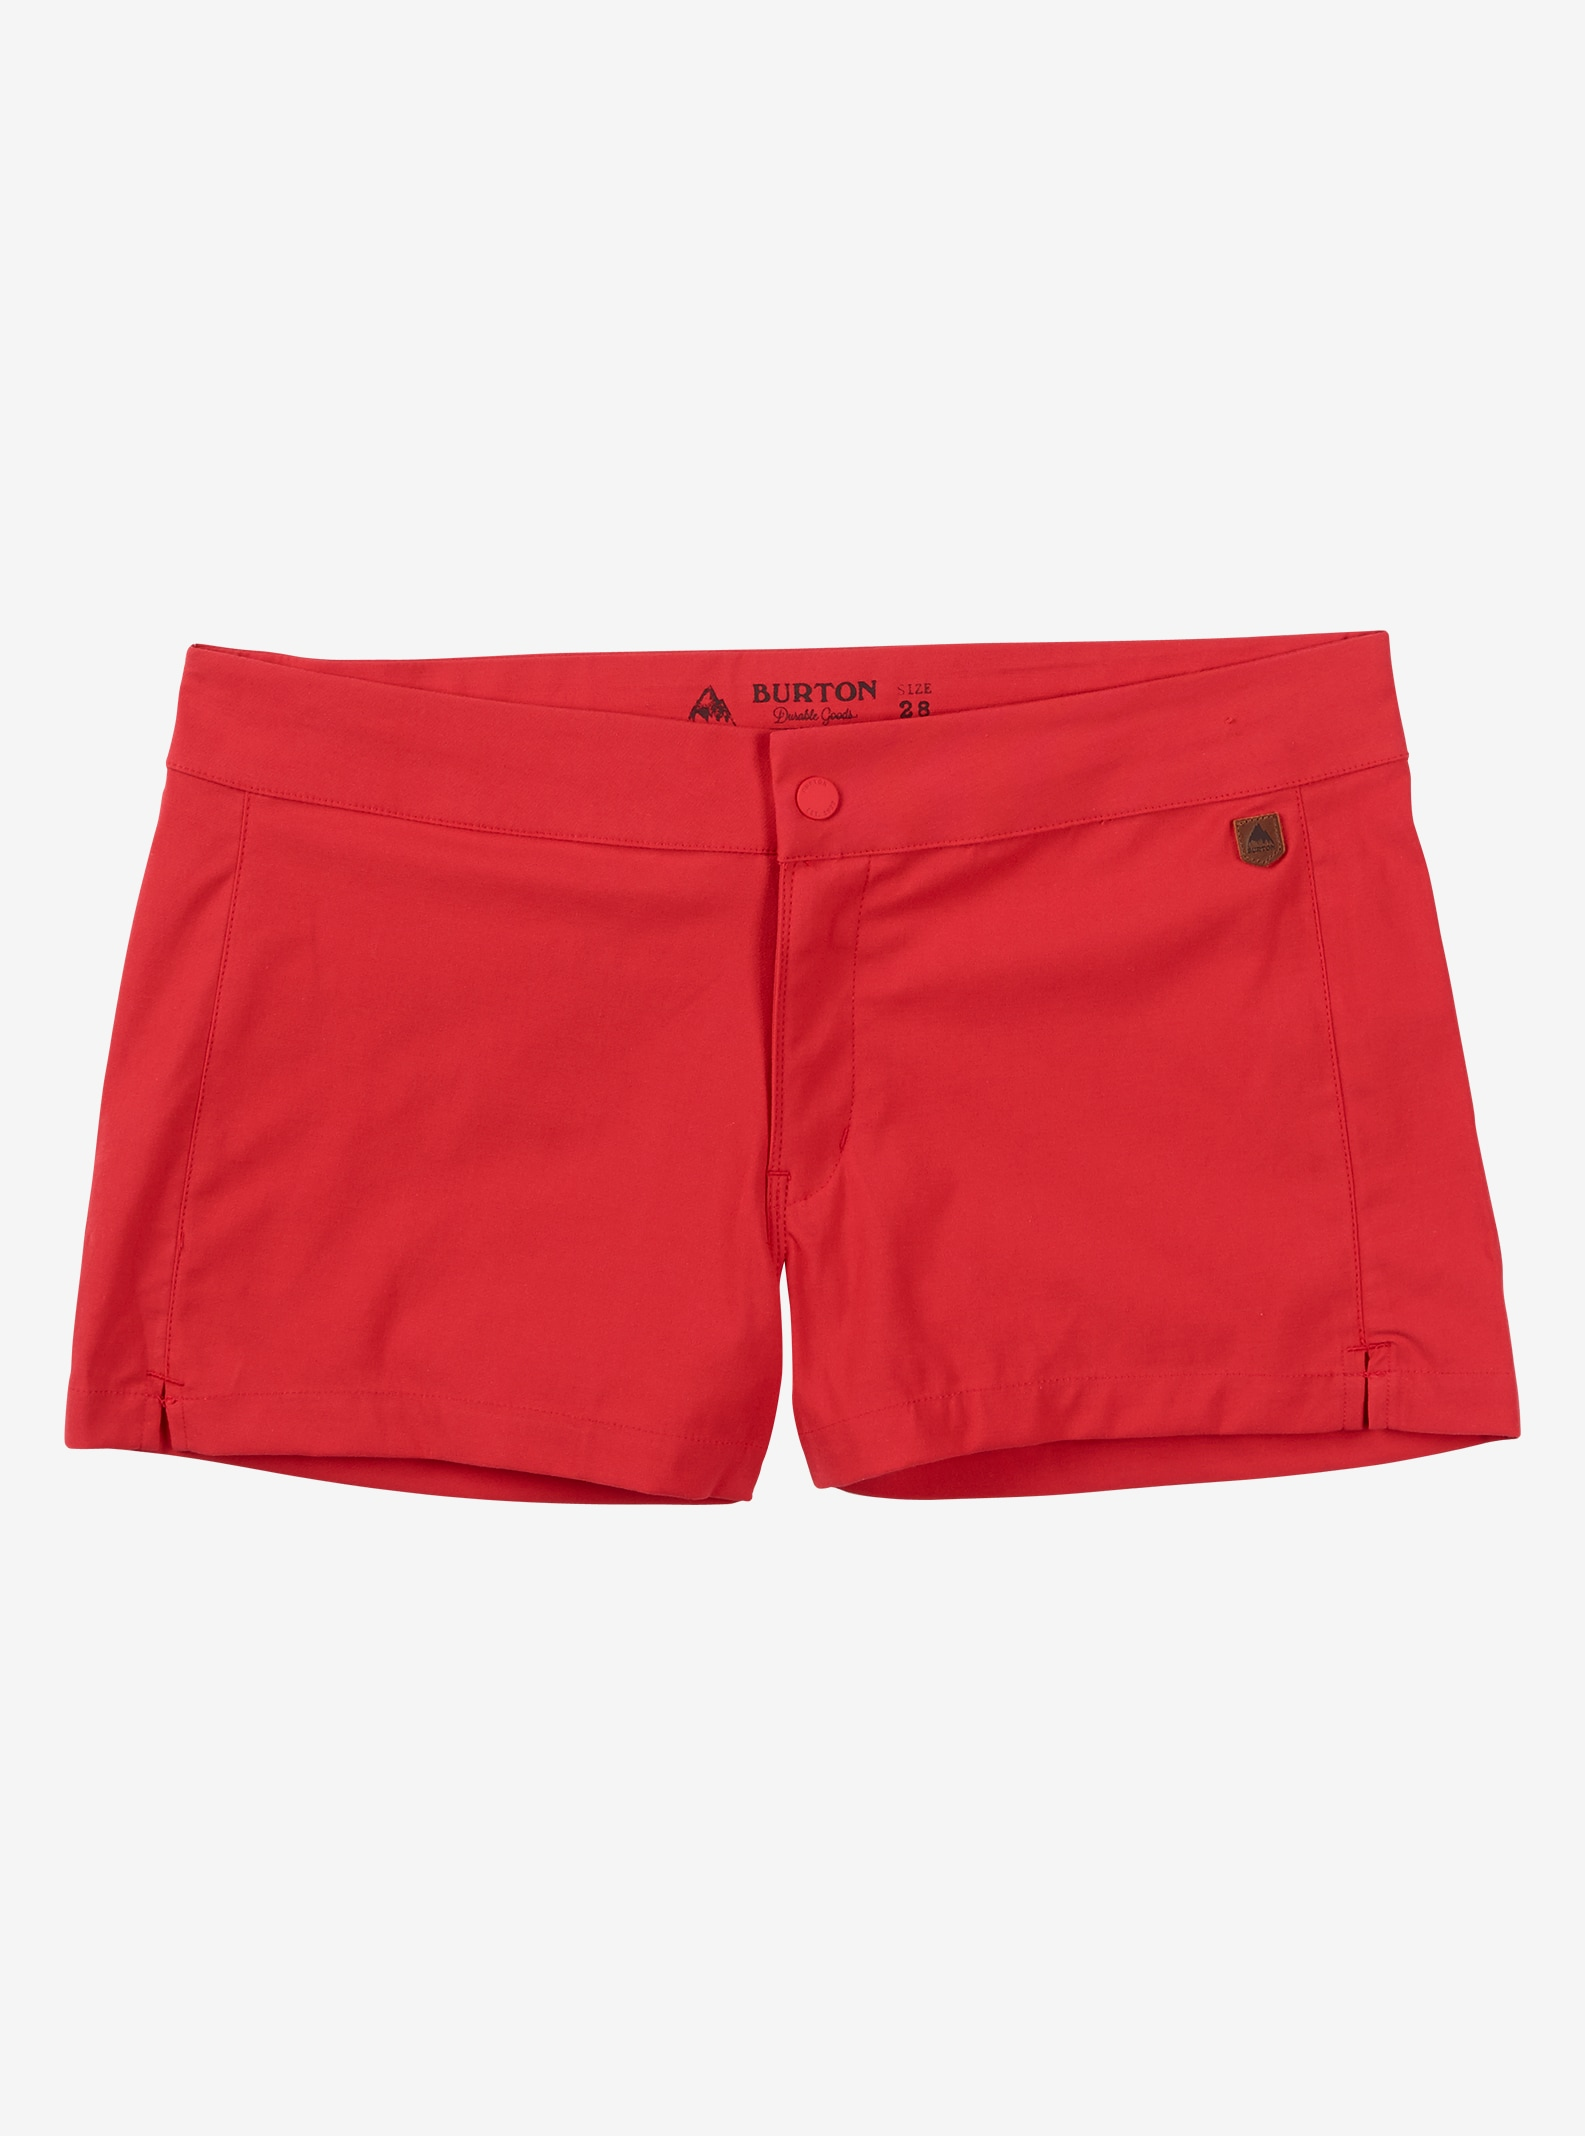 Burton Shearwater Boardshorts angezeigt in Coral